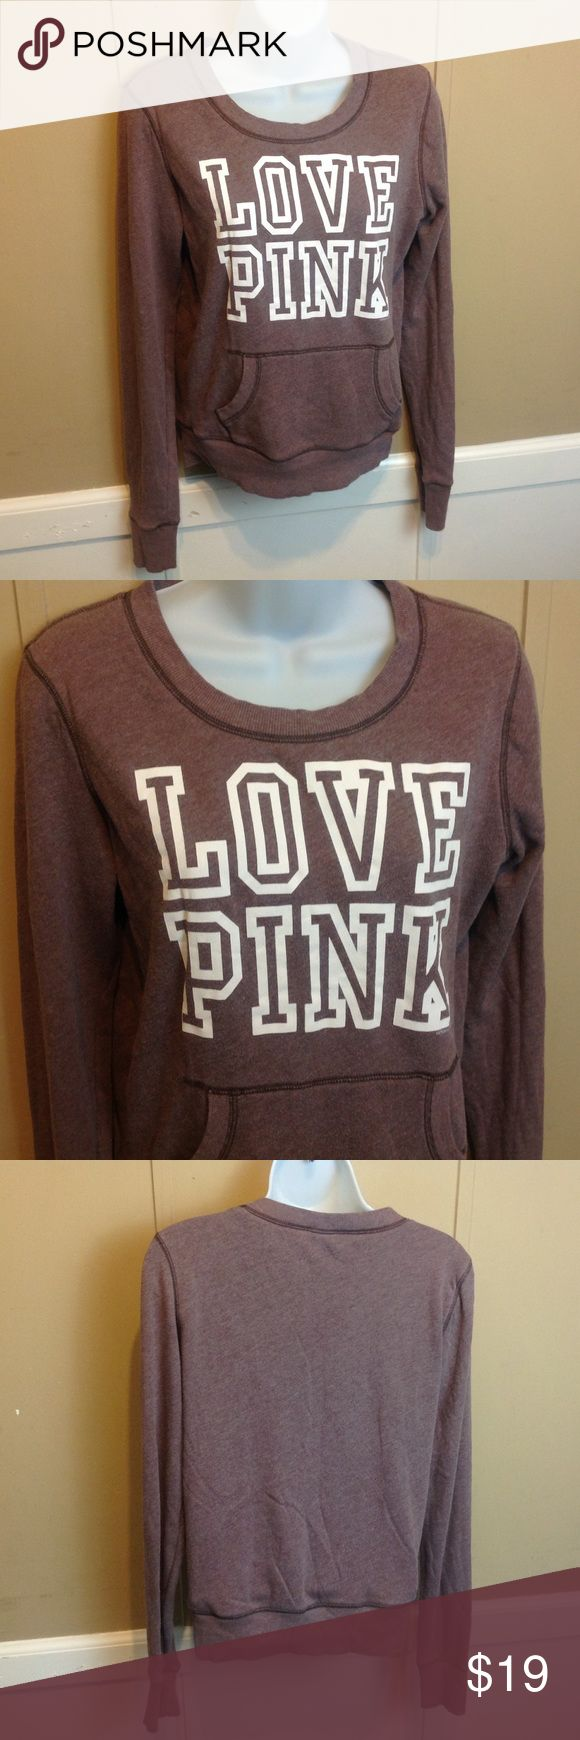 "Victoria's Secret PINK Pullover Sweatshirt Maker: Victoria's Secret ♥ Material: 60/40 Cotton and Polyester ♥ Color: Mauve ♥ Measured Size: Pit to pit- 19"" Pit to cuff- 21"" Shoulder to waist- 23""  ♥ Tag Size:  XS ♥ Actual Size: XS PLEASE CHECK YOUR ACTUAL MEASUREMENTS TO MAKE SURE IT IS THE RIGHT SIZE! THANKS! ♥ Condition: Great ♥ Item #: (office use only) E   Follow us on Instagram and facebook for coupon codes!  INSTAGRAM-thehausofvintage1984 PINK Victoria's Secret Tops Sweatshirts…"